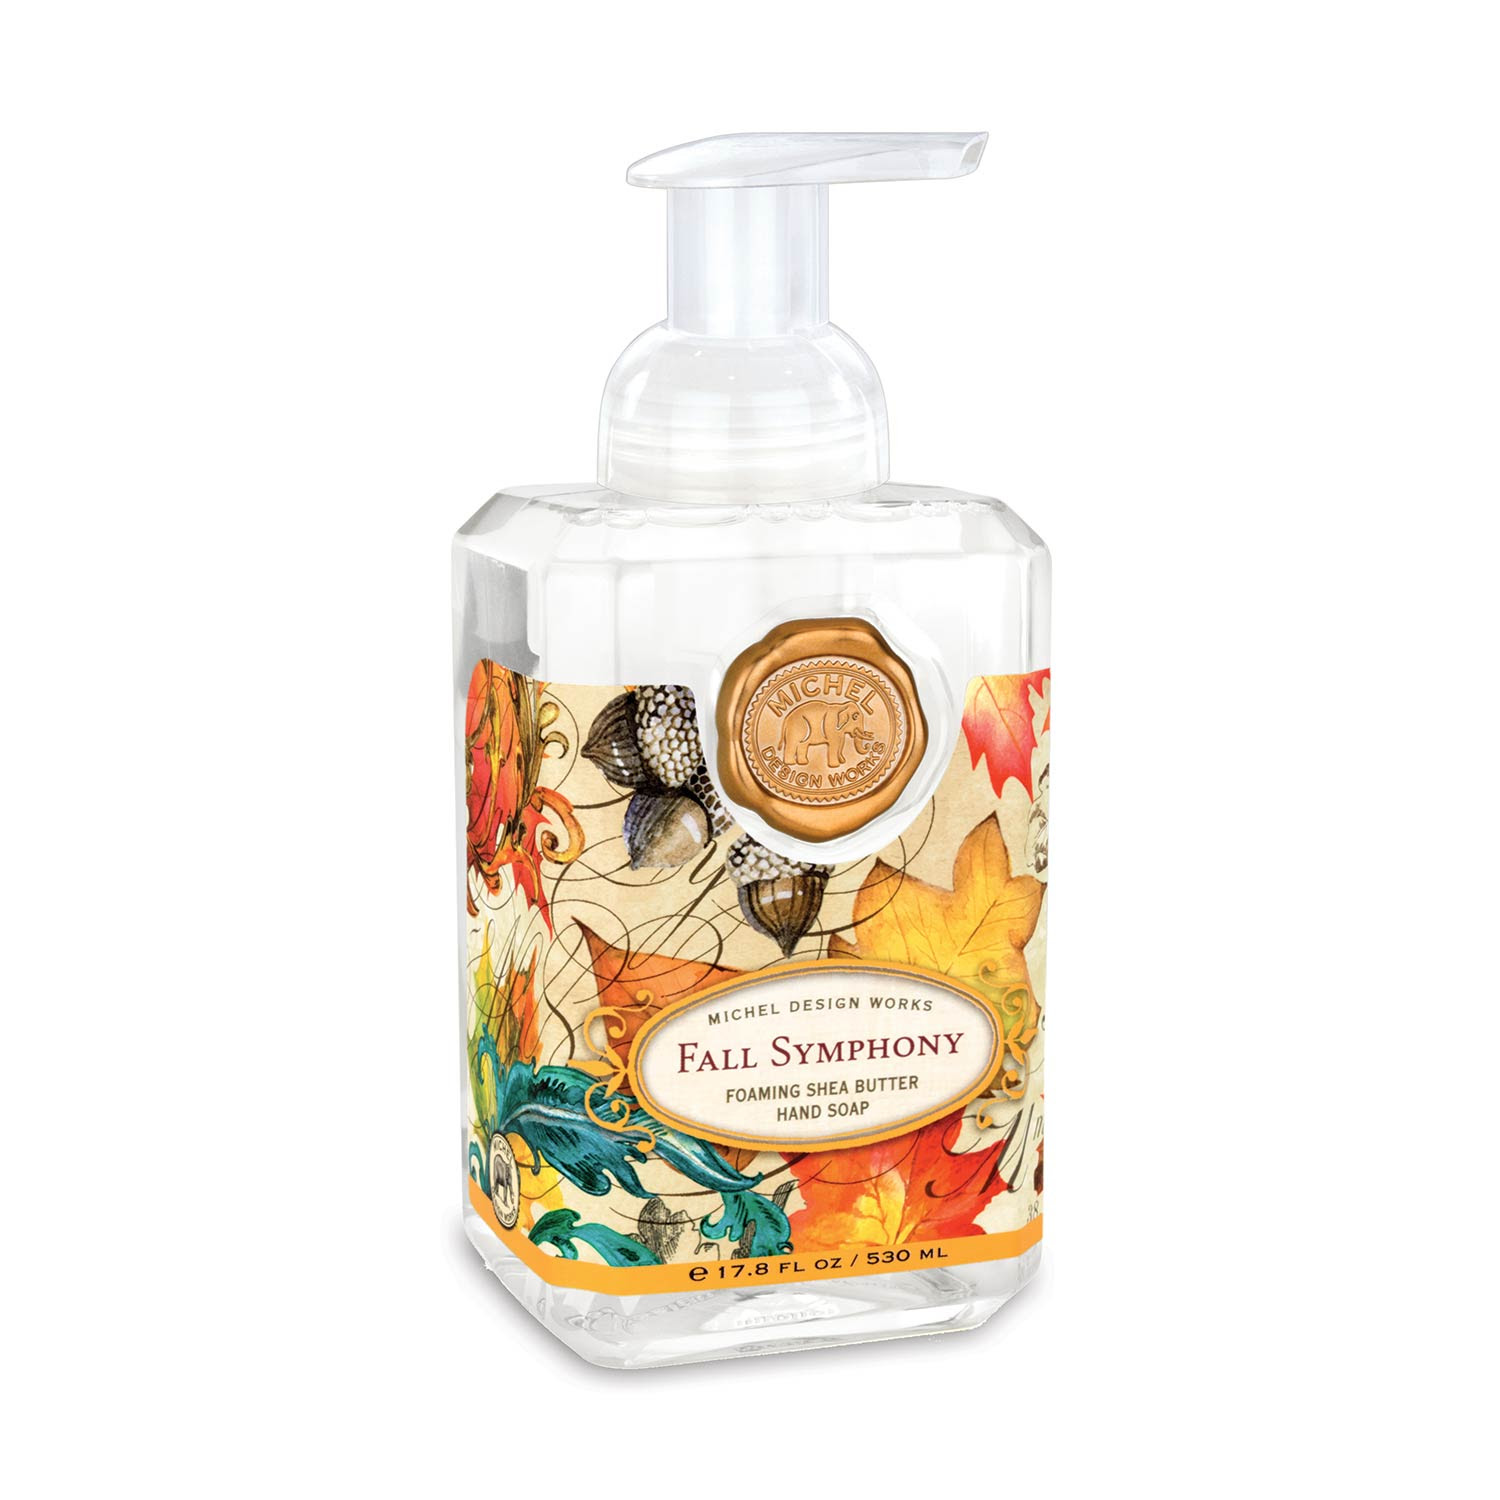 Foaming Hand Soap By Michel Design Works Fall Symphony